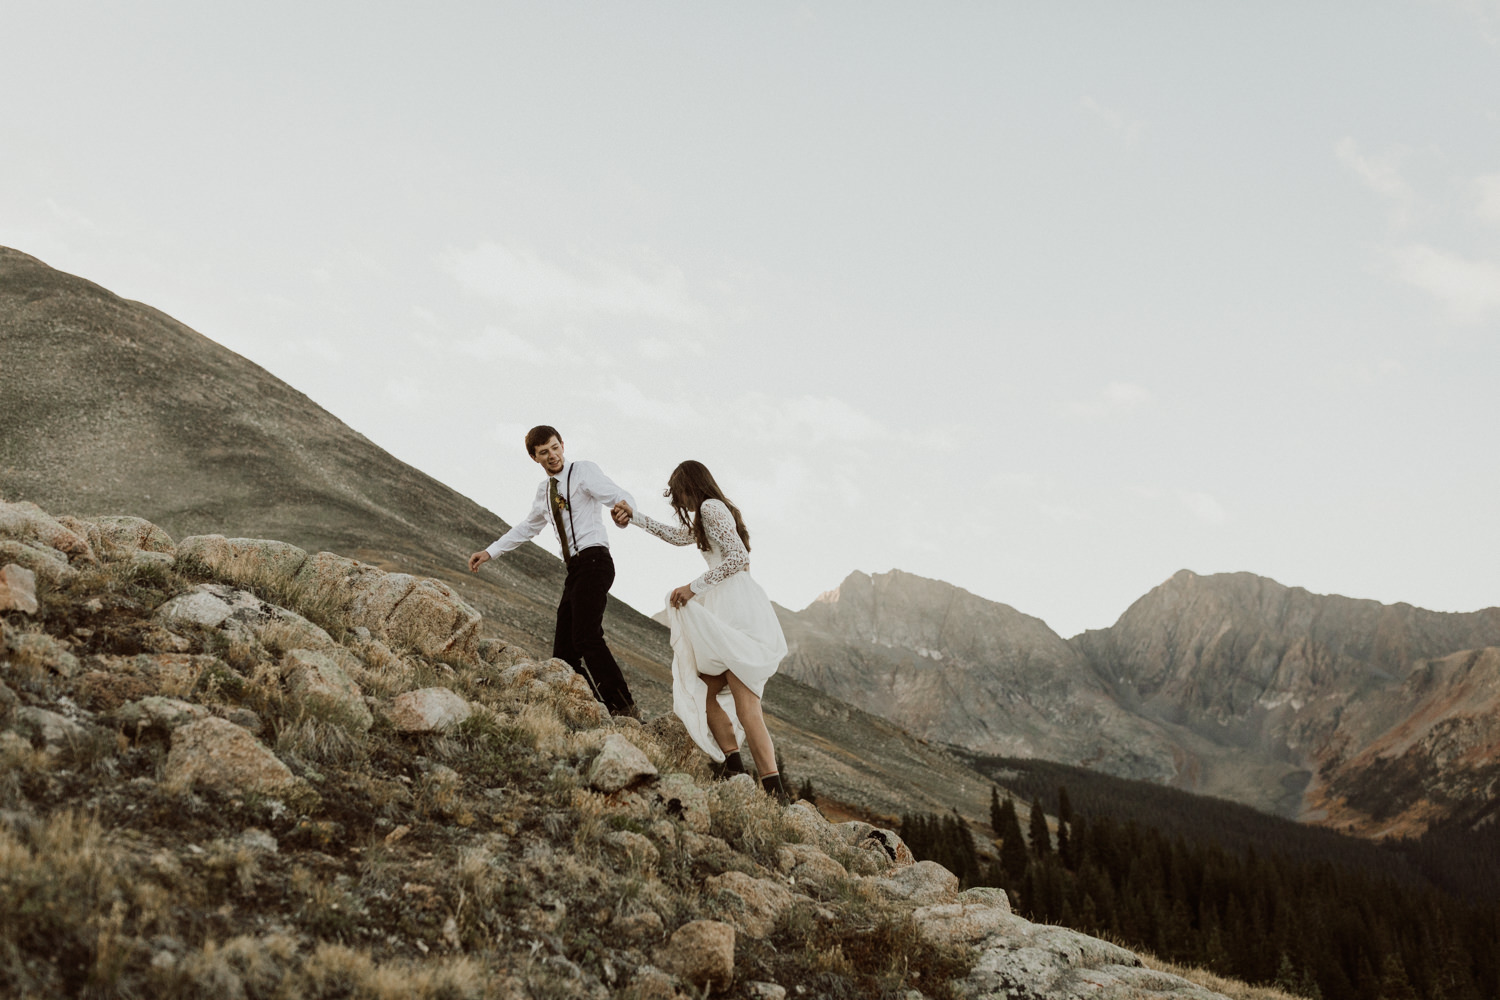 fourteener-adventure-wedding-photographer-21.jpg